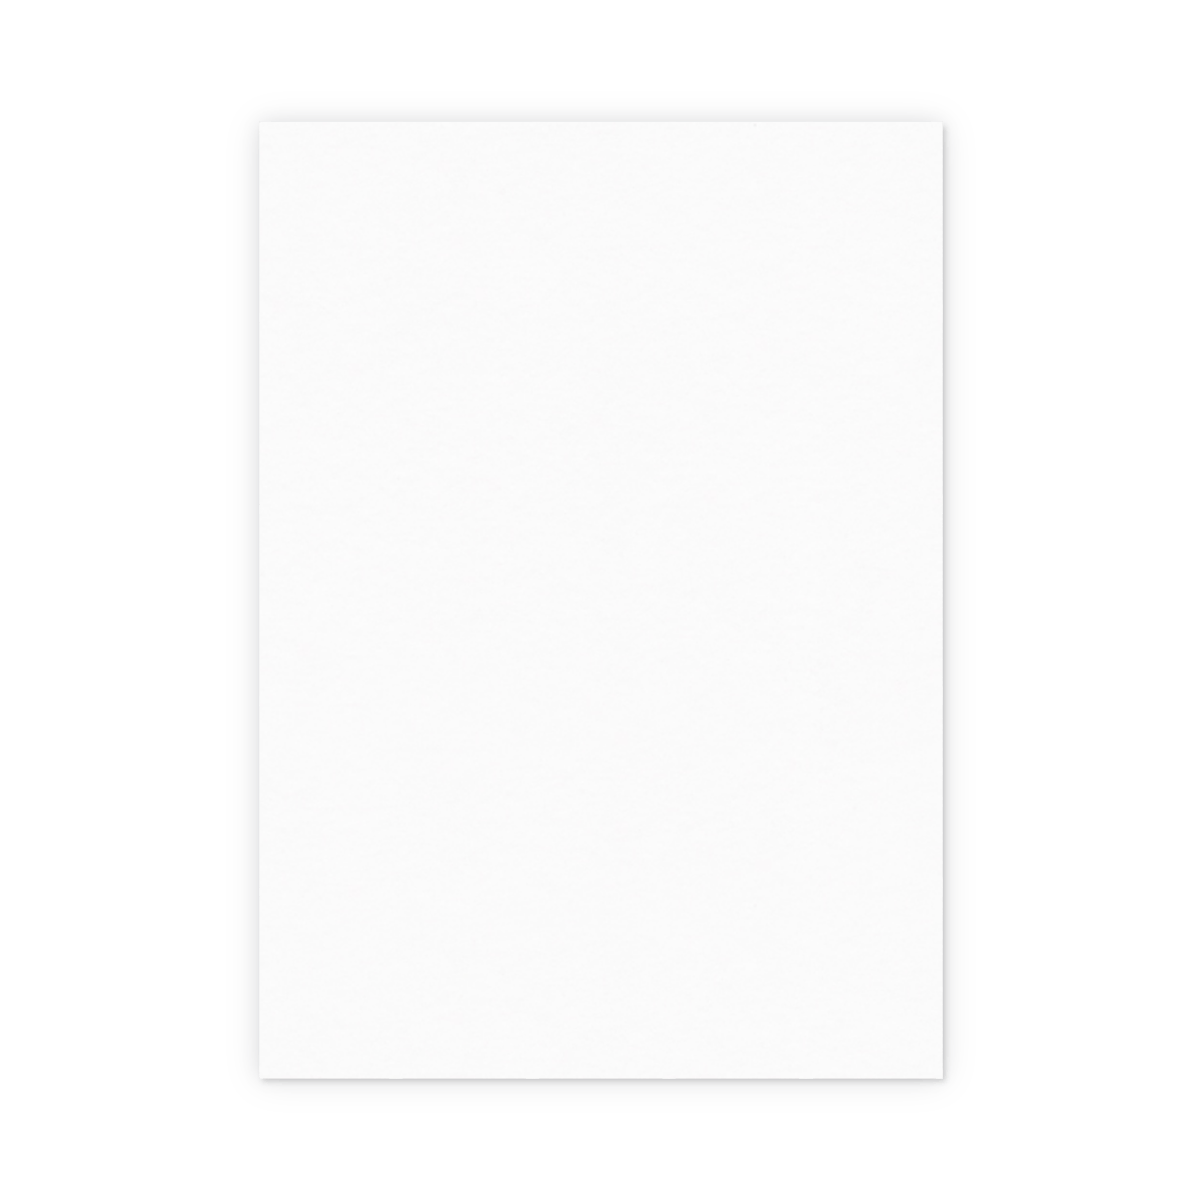 Https%3a%2f%2fwww.papier.com%2fproduct image%2f34631%2f4%2fshapes colours three 8657 rueckseite 1519899038.png?ixlib=rb 1.1